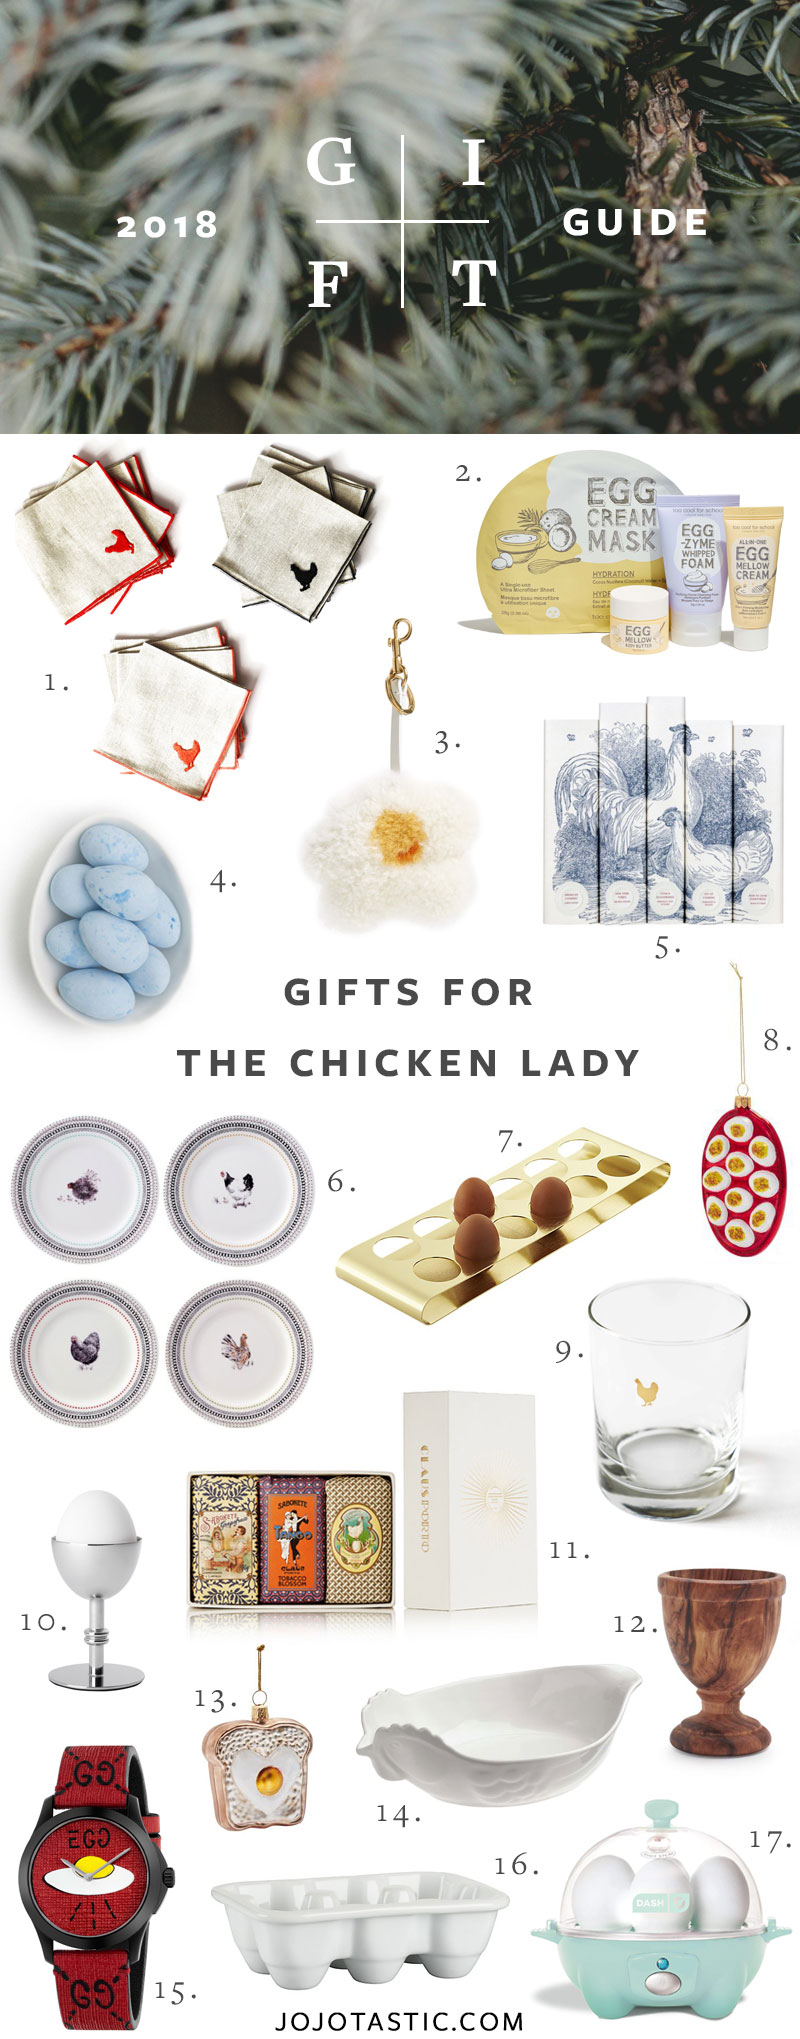 Gift Ideas for the Chicken Lady, Gift Guide for Christmas & Holidays 2018 via jojotastic.com #giftguide #giftidea #giftgiving #gifts #presents #christmaspresents #christmasgiftideas #christmasgift #chickens #backyardchickens #chickenlady #fancychickens #eggs